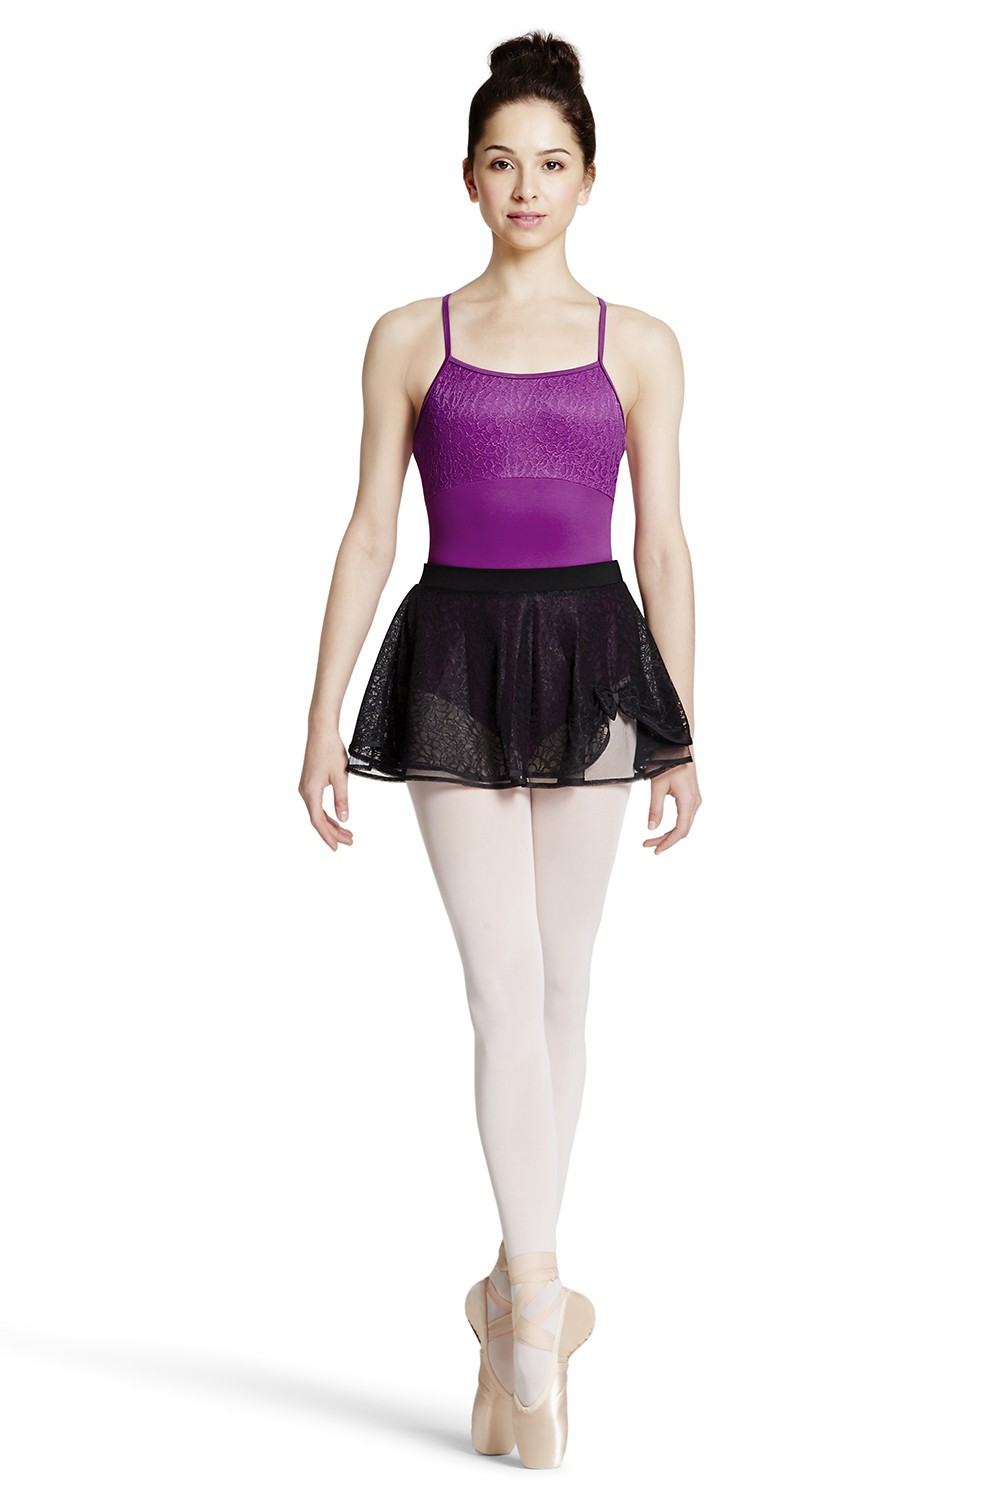 Spitzenrock Mit Blumendruck Women's Dance Skirts